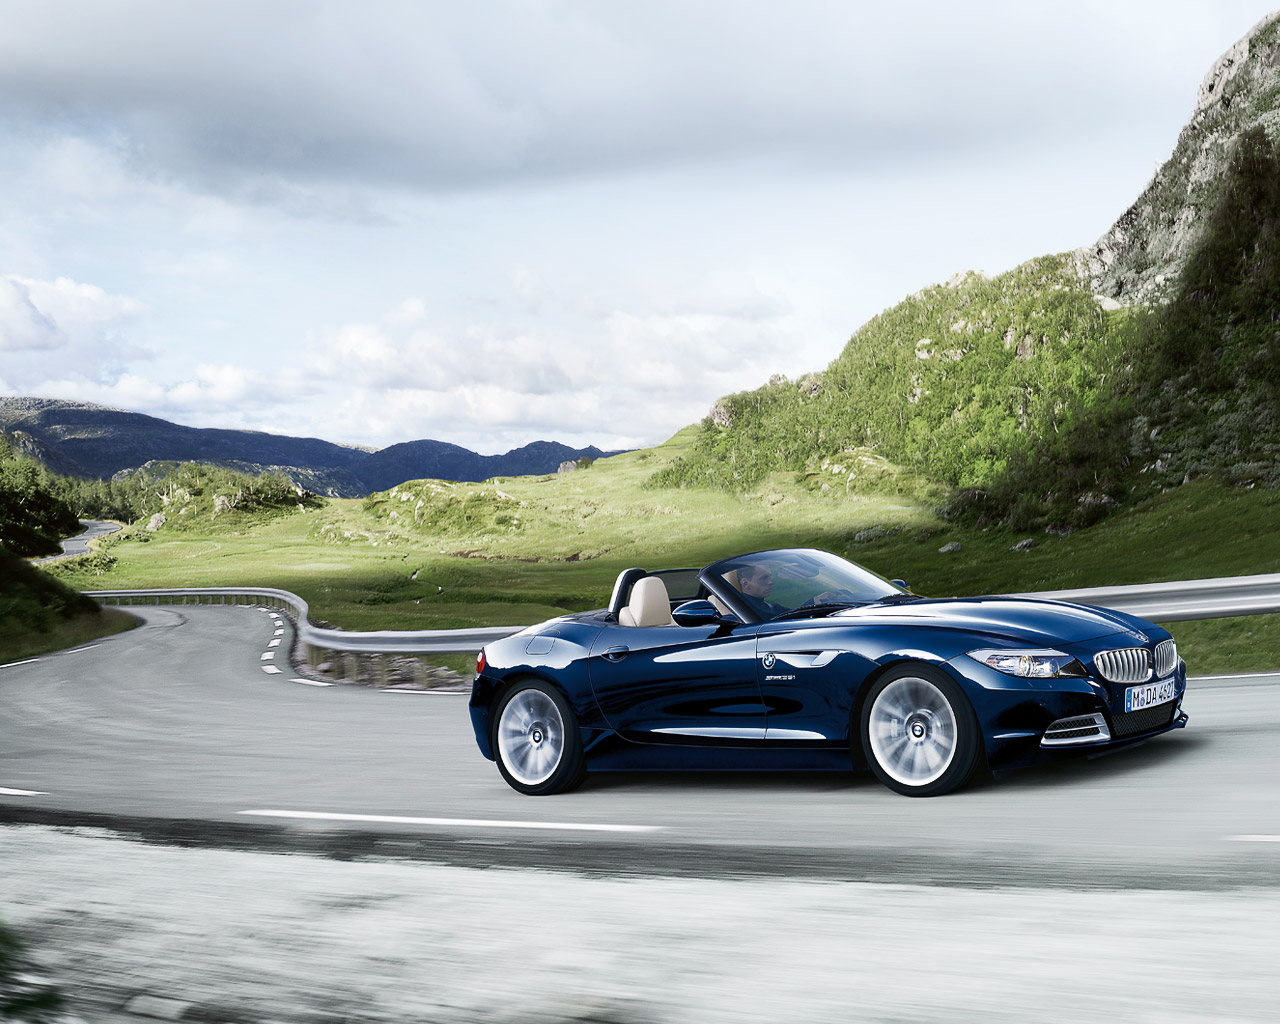 World Best Sports Cars Wallpapers World Of Cars Bmw Z4 Images